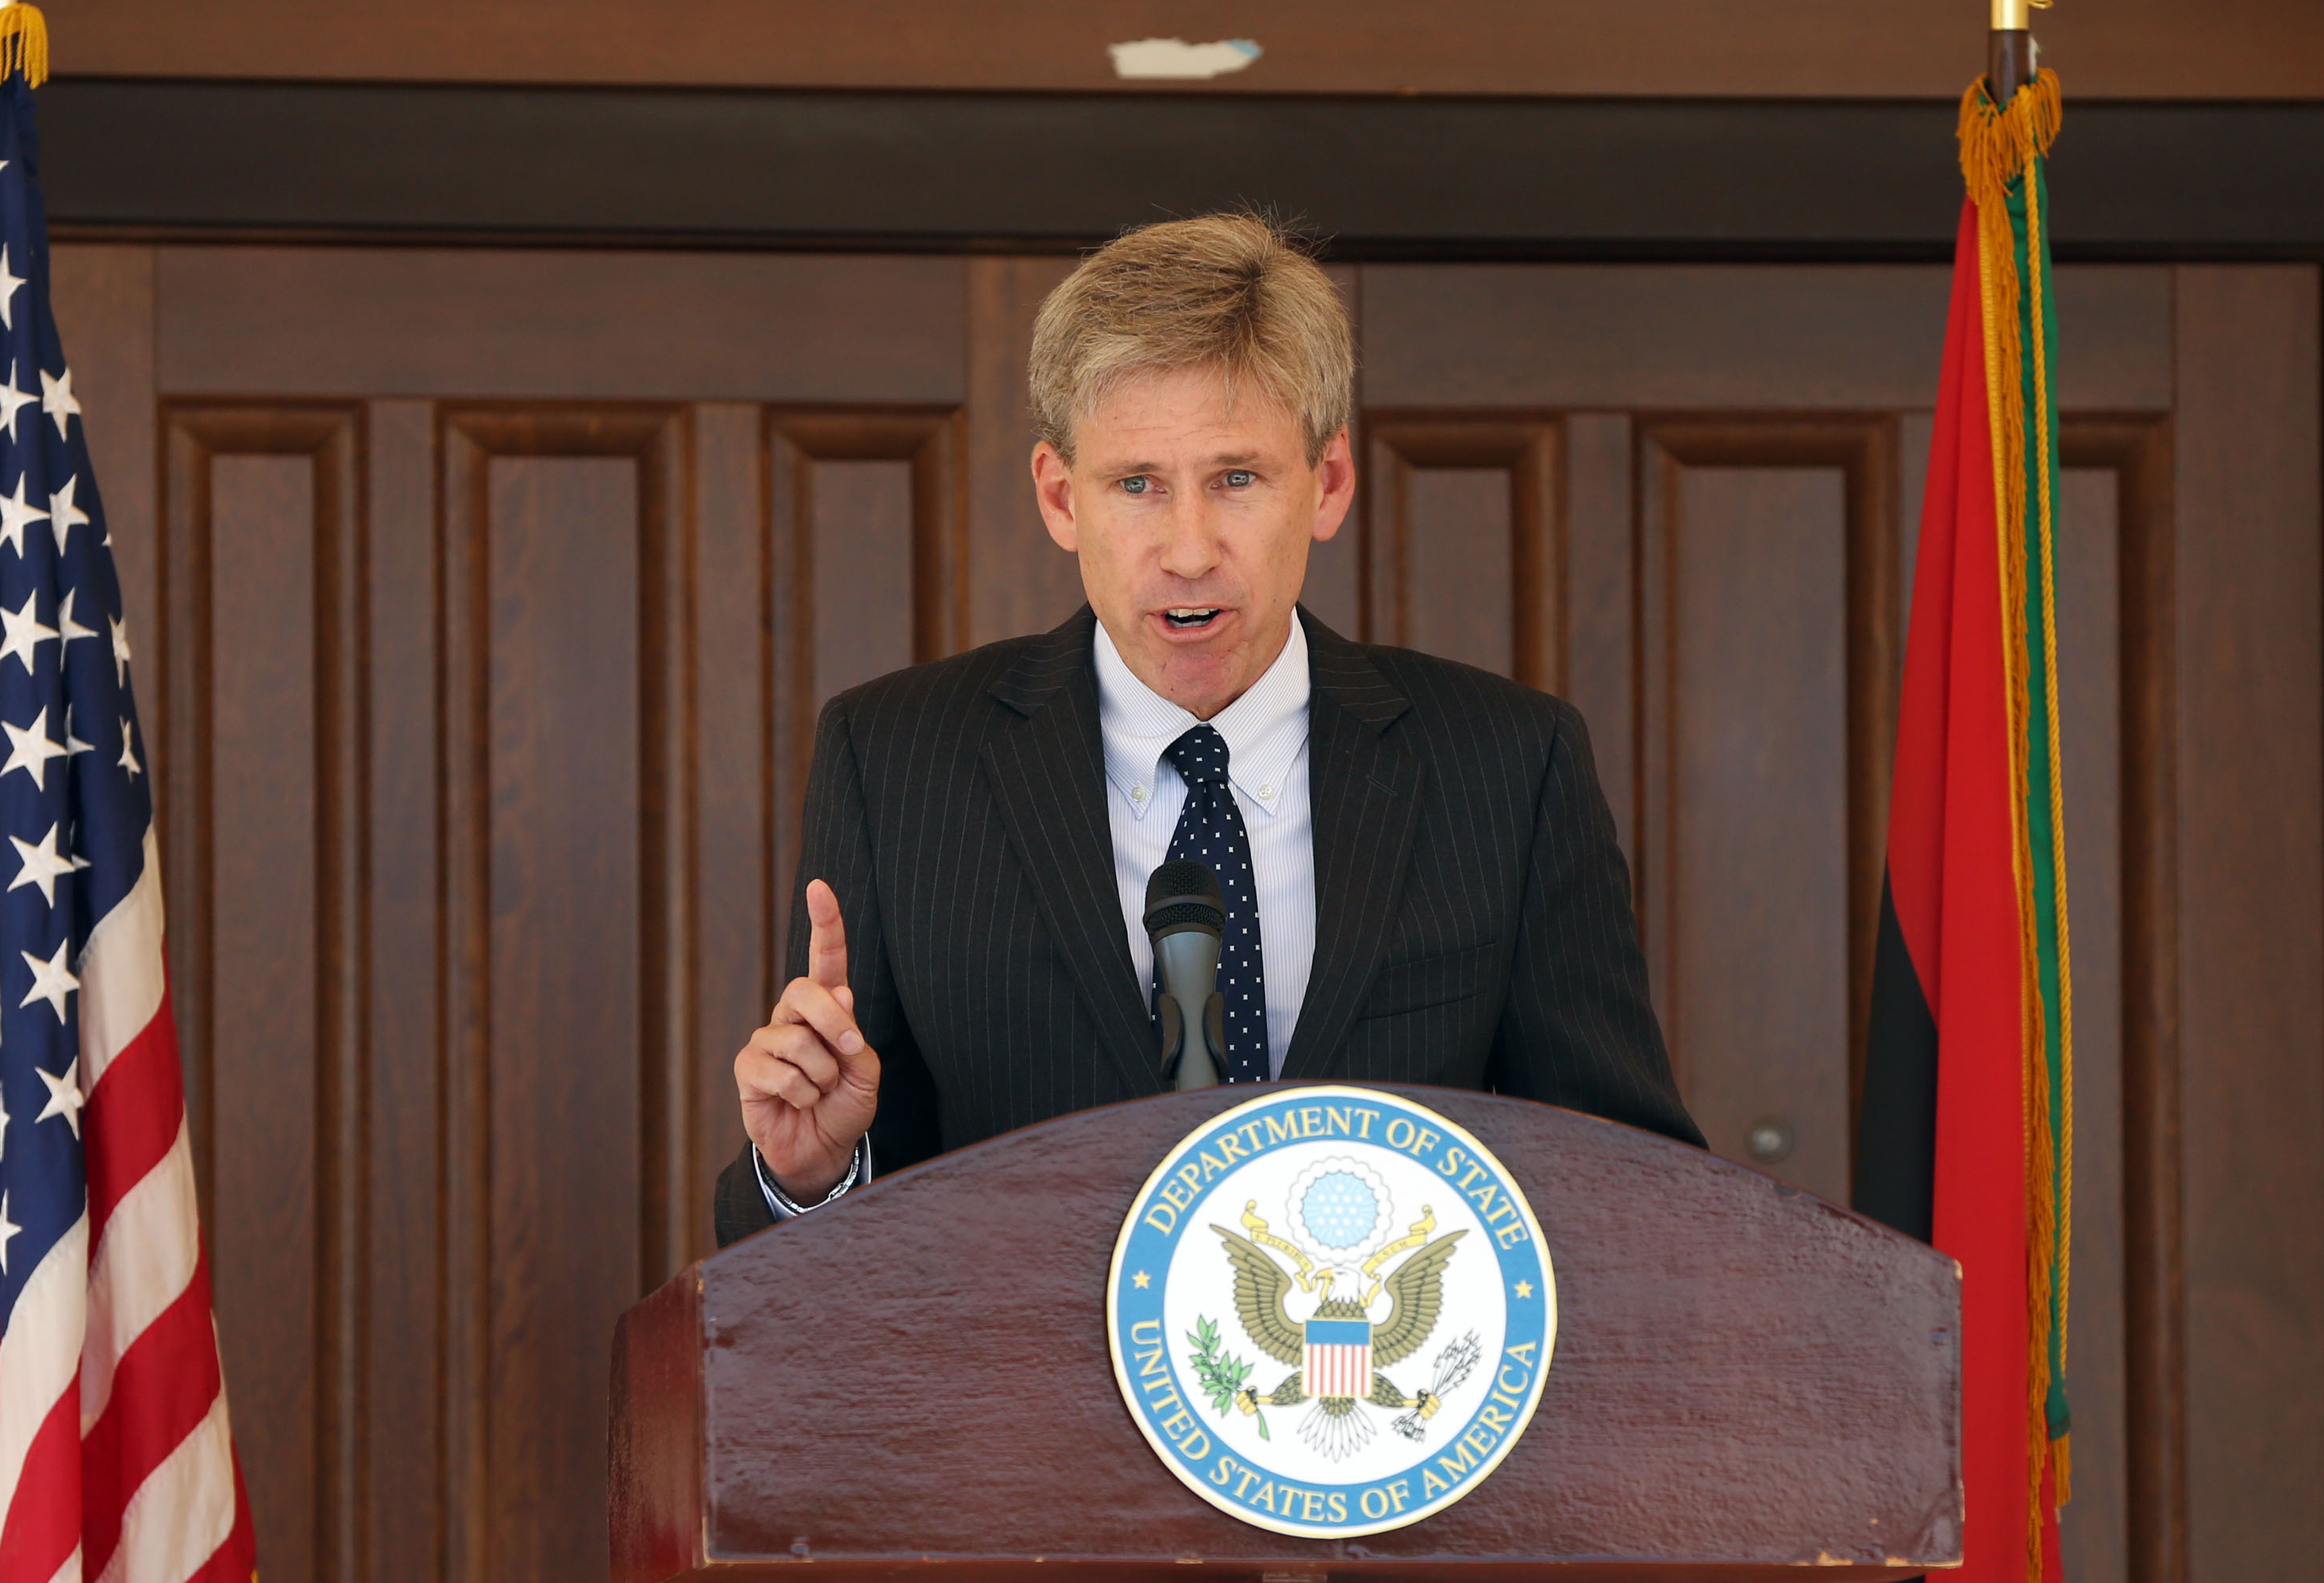 U.S. Ambassador to Libya Chris Stevens gives a speech on August 26, 2012 at the U.S. embassy in Tripoli.